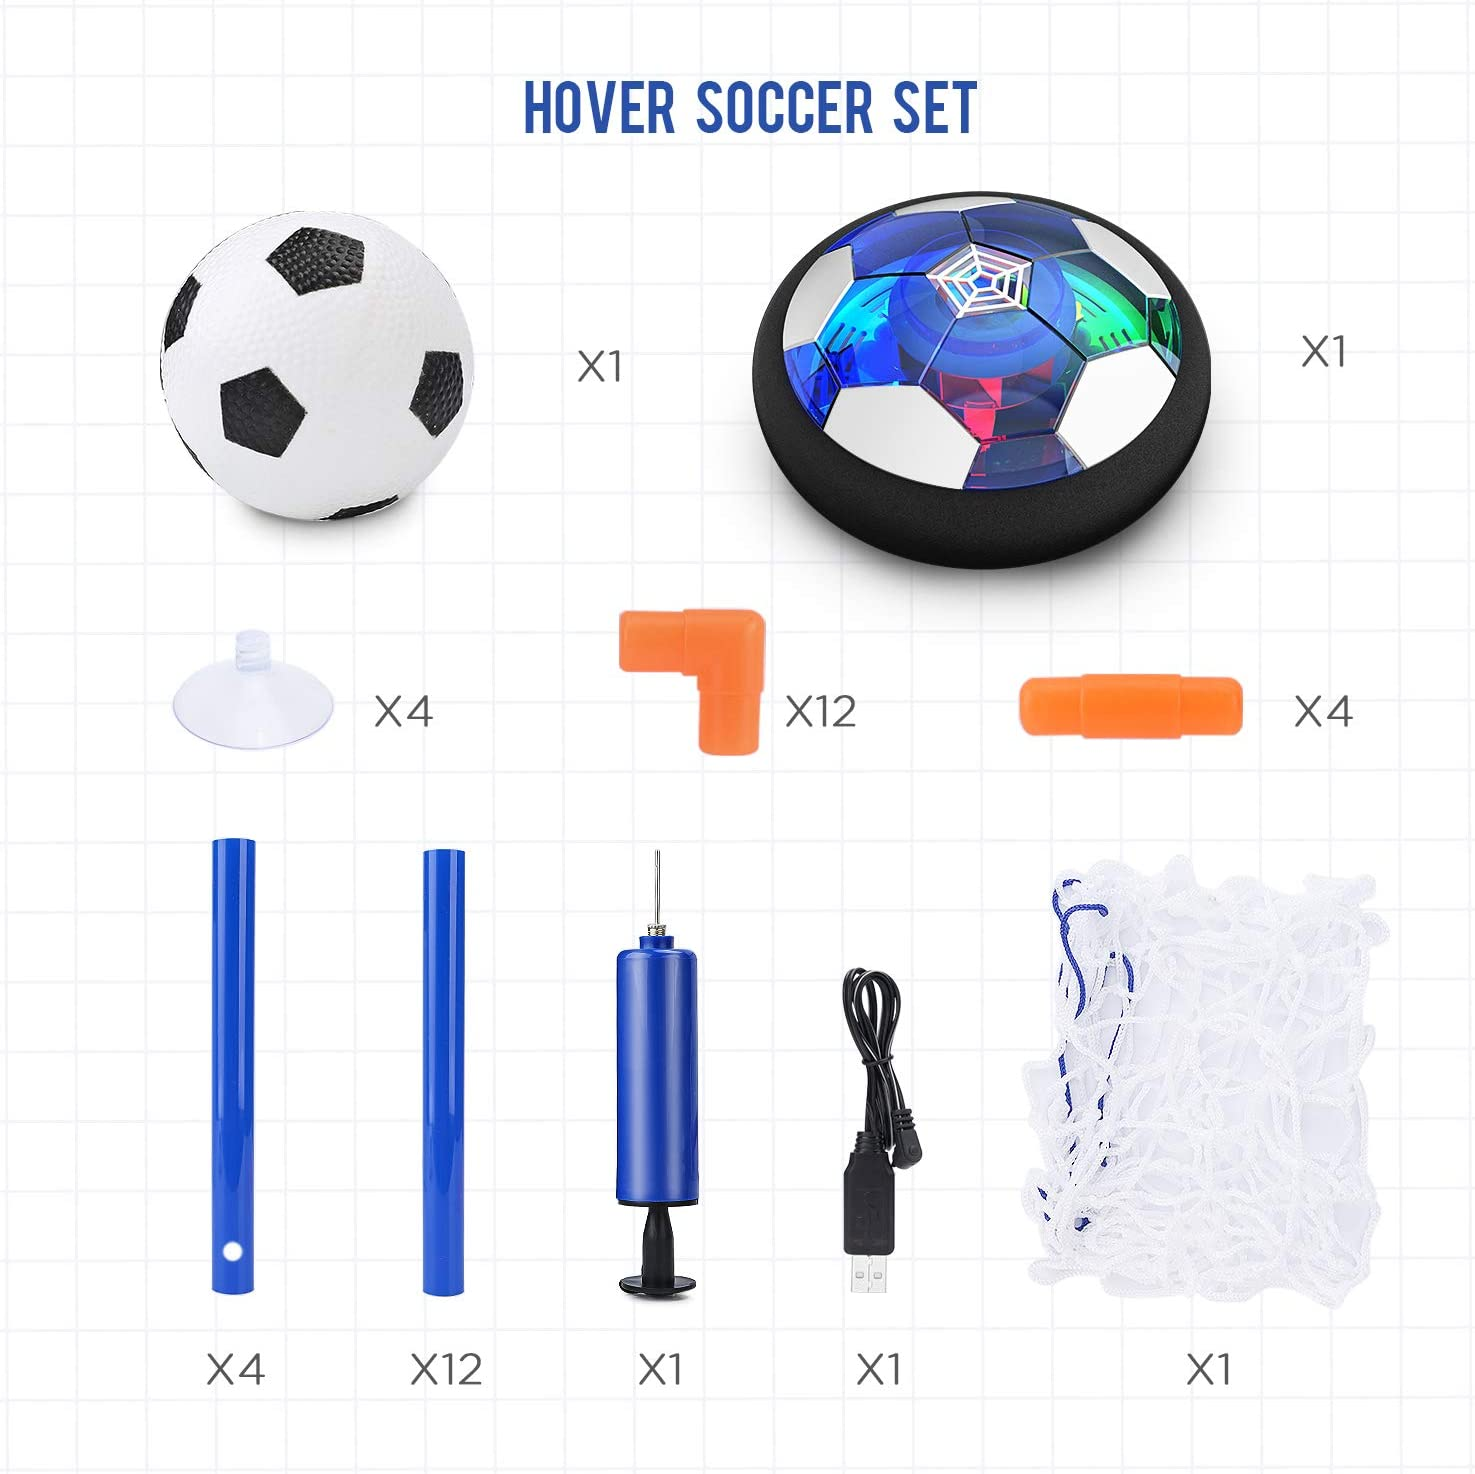 CUKU Kids Toy,Hover Soccer Ball Toys for 3 4 5 6 7 8 Years Old Boy Girl , 2 Goals and Inflatable Ball,Indoor Floating Soccer with LED Light and Safe Bumper(No AA Batteries Needed) (Blue): Toys & Games